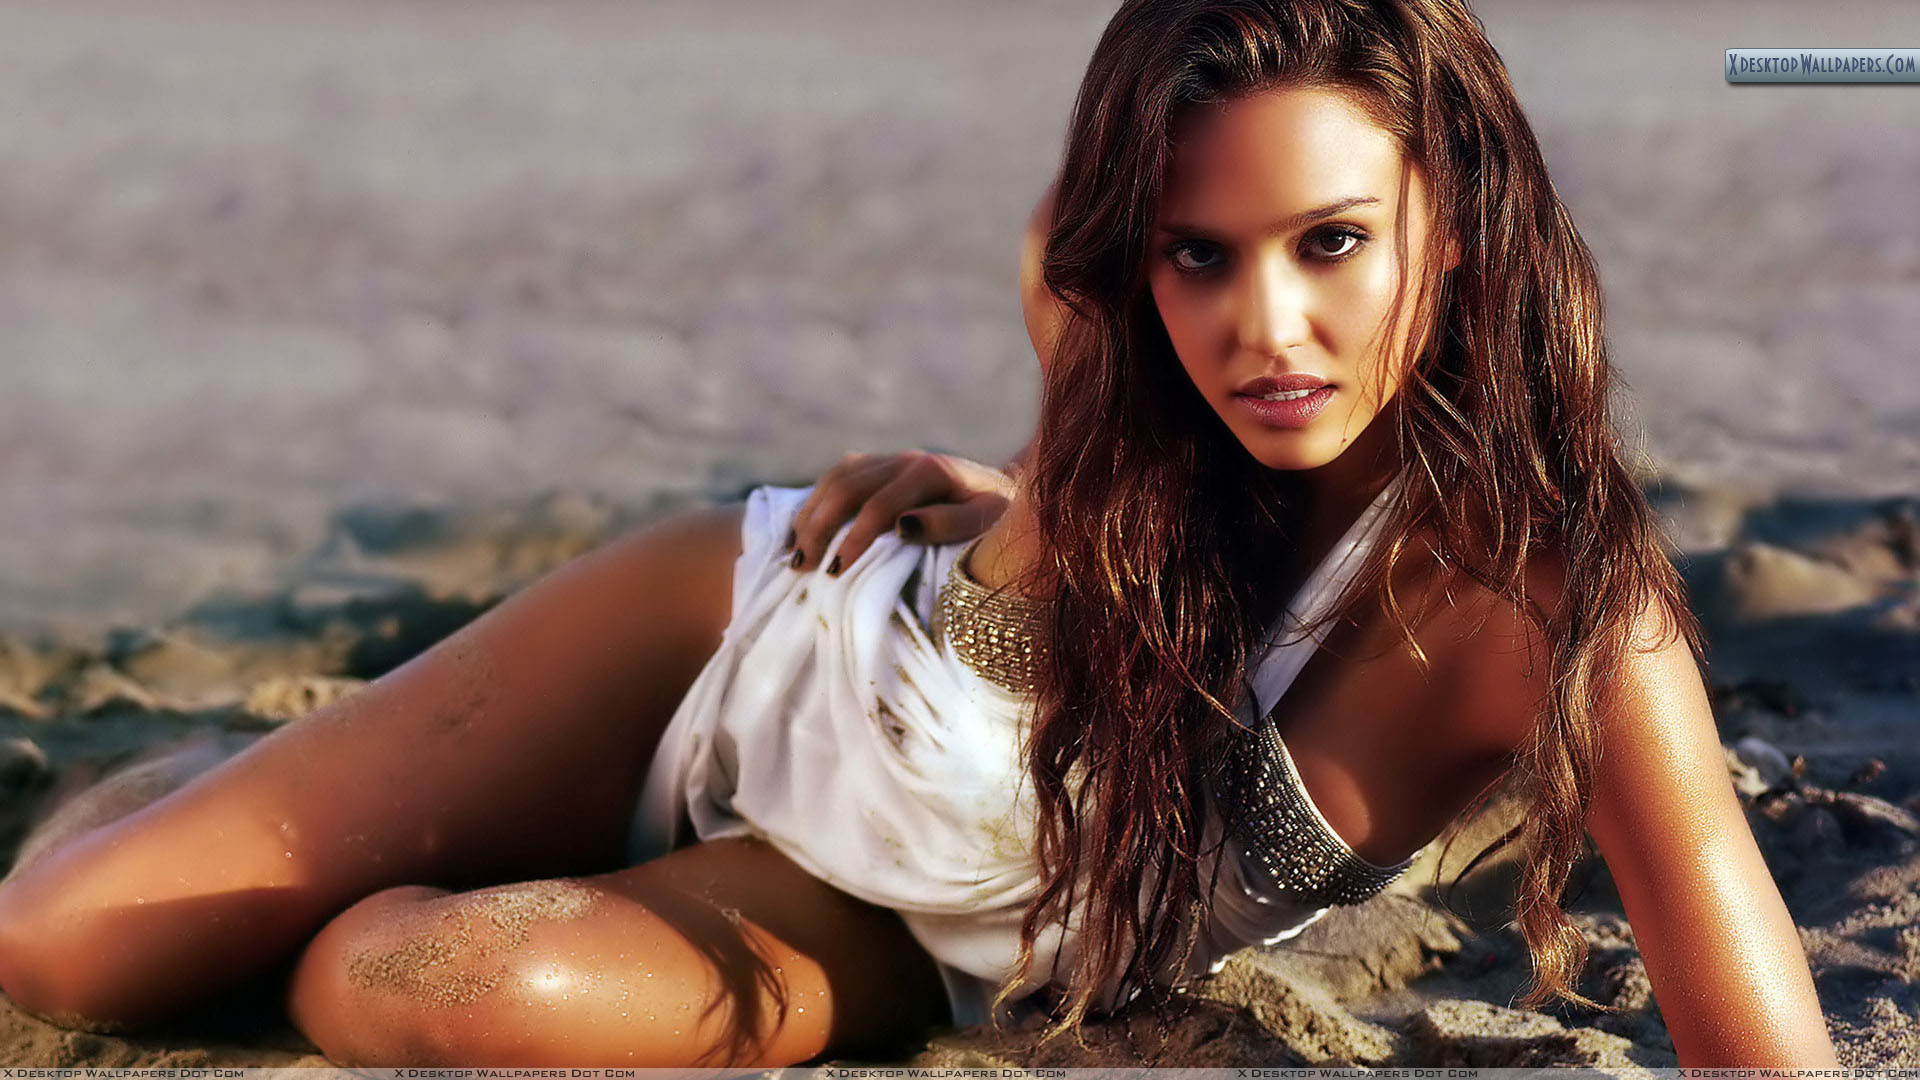 jessica alba wallpaper pc - photo #36